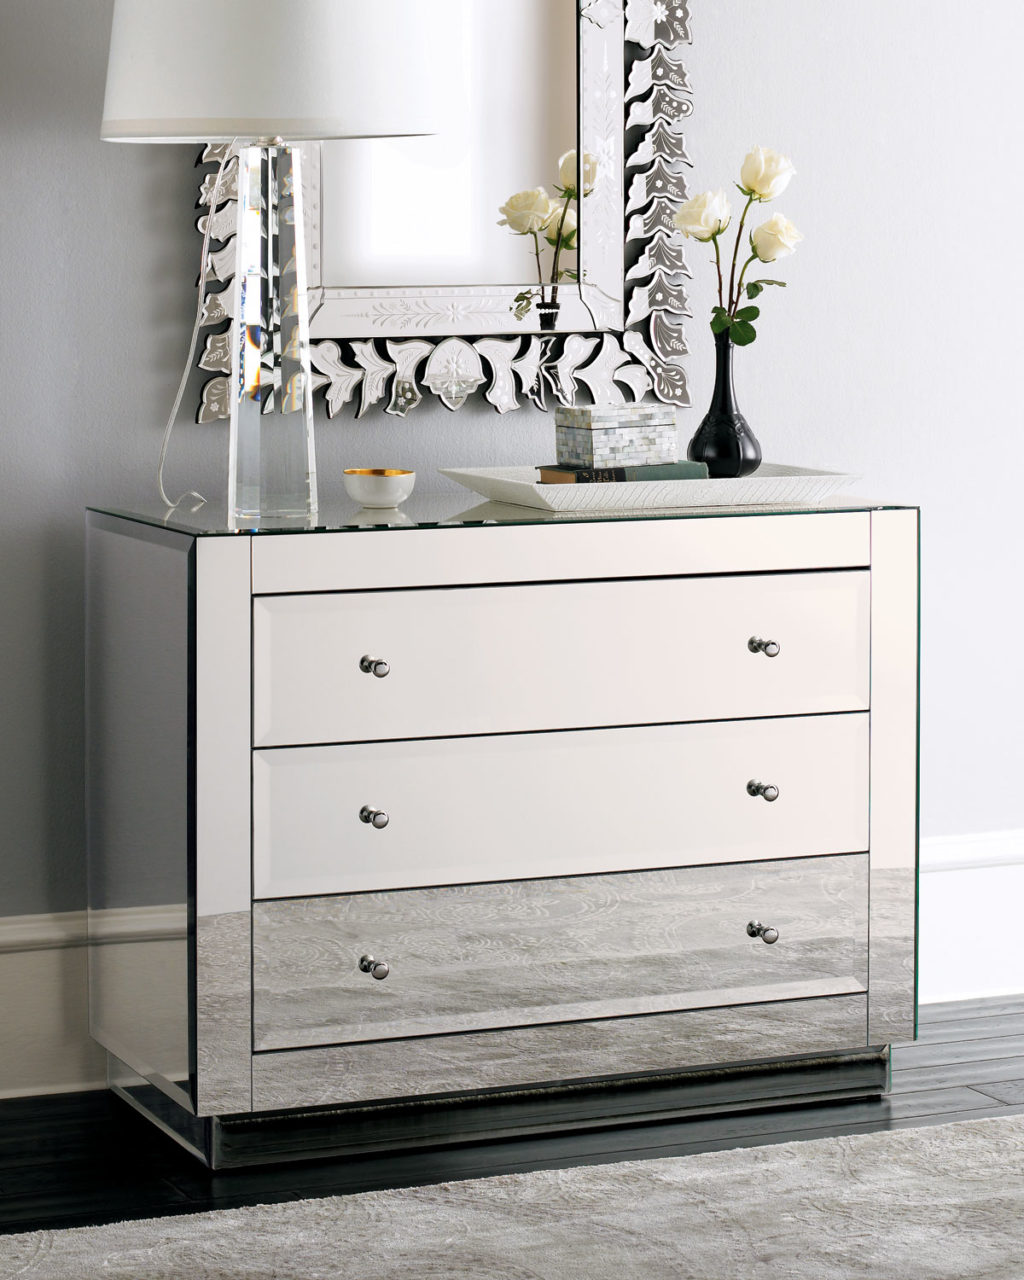 furniture upgrade your home with pretty mirrored dresser gallerie mirror end table target accent nightstands ikea side dressers mirrors contemporary wood coffee gold beach style